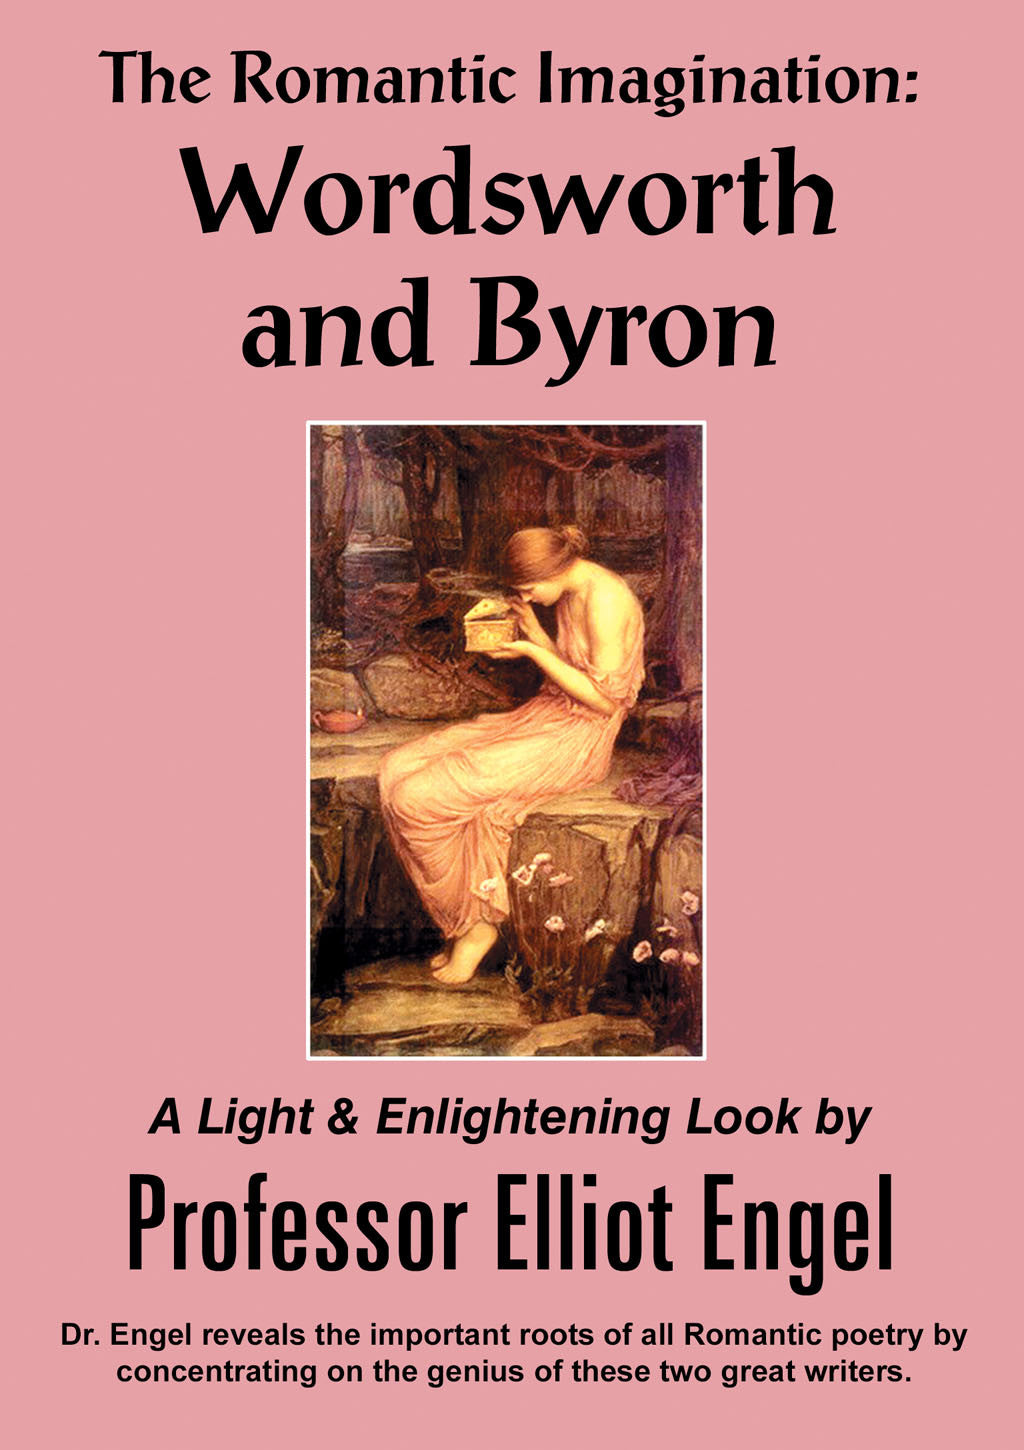 DL19 The Romantic Imagination: Wordsworth and Byron AUDIO DOWNLOAD